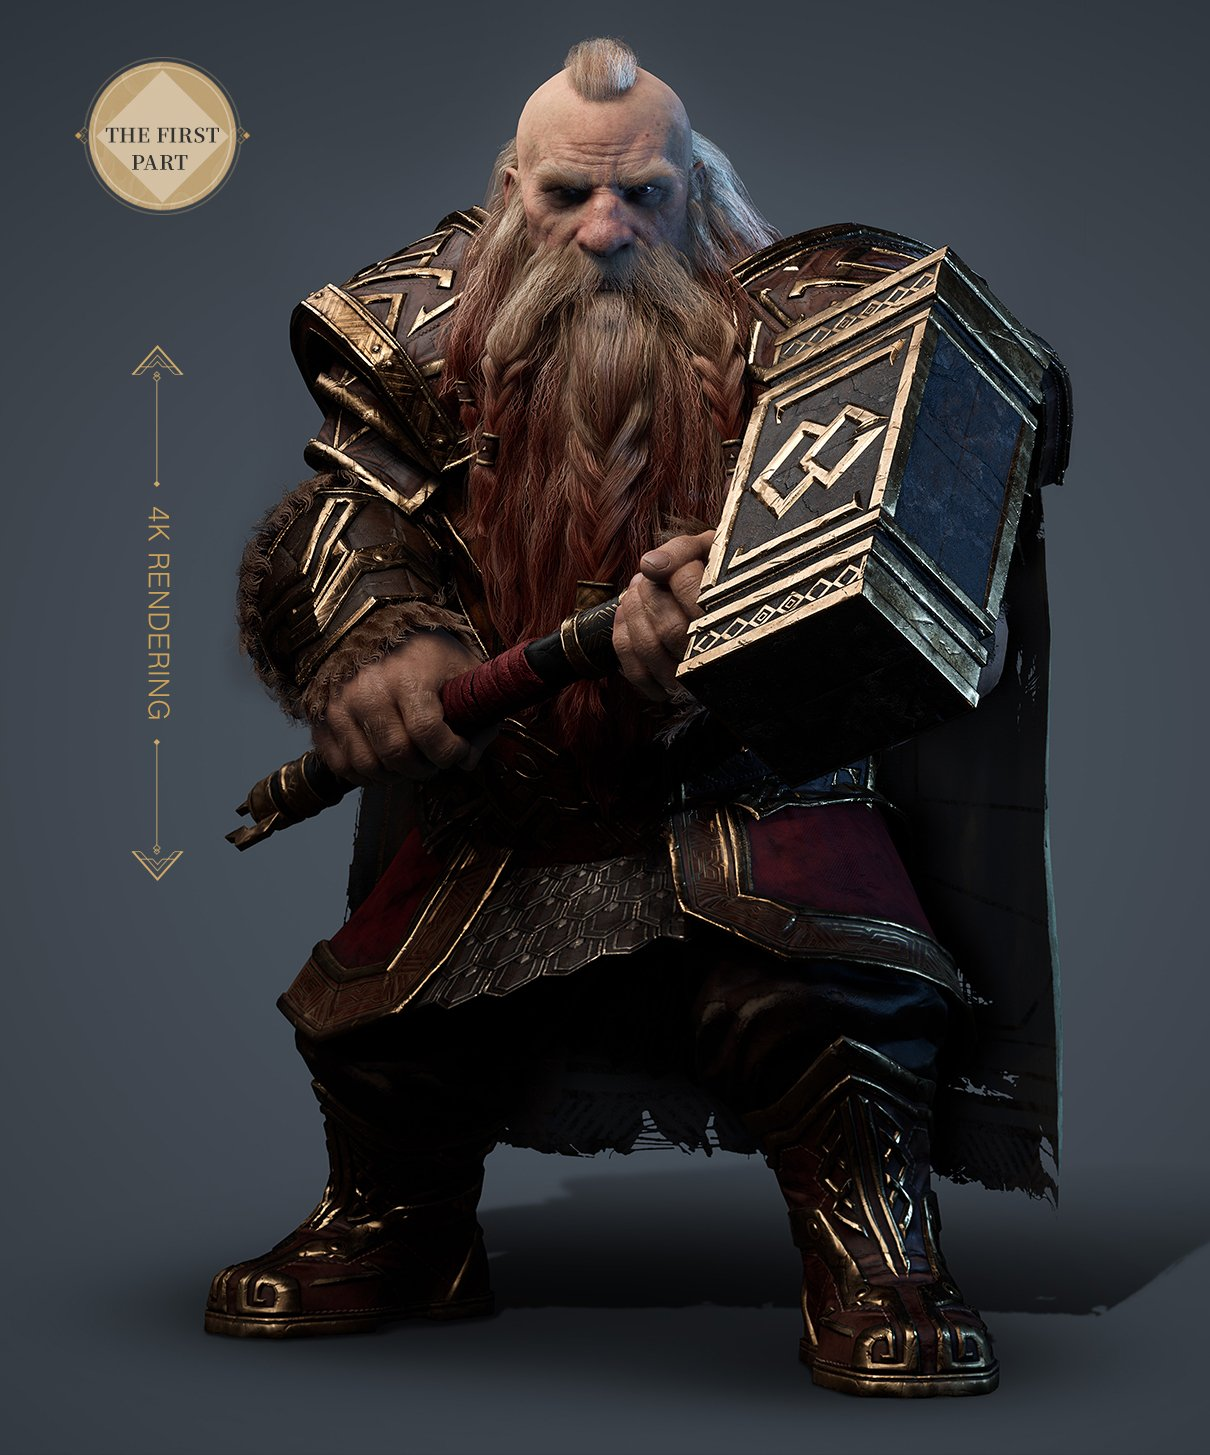 The Dwarf Warrior: 3D Character Creation For Game The Dwarf Warrior The Dwarf Warrior,3D Character Creation For Game